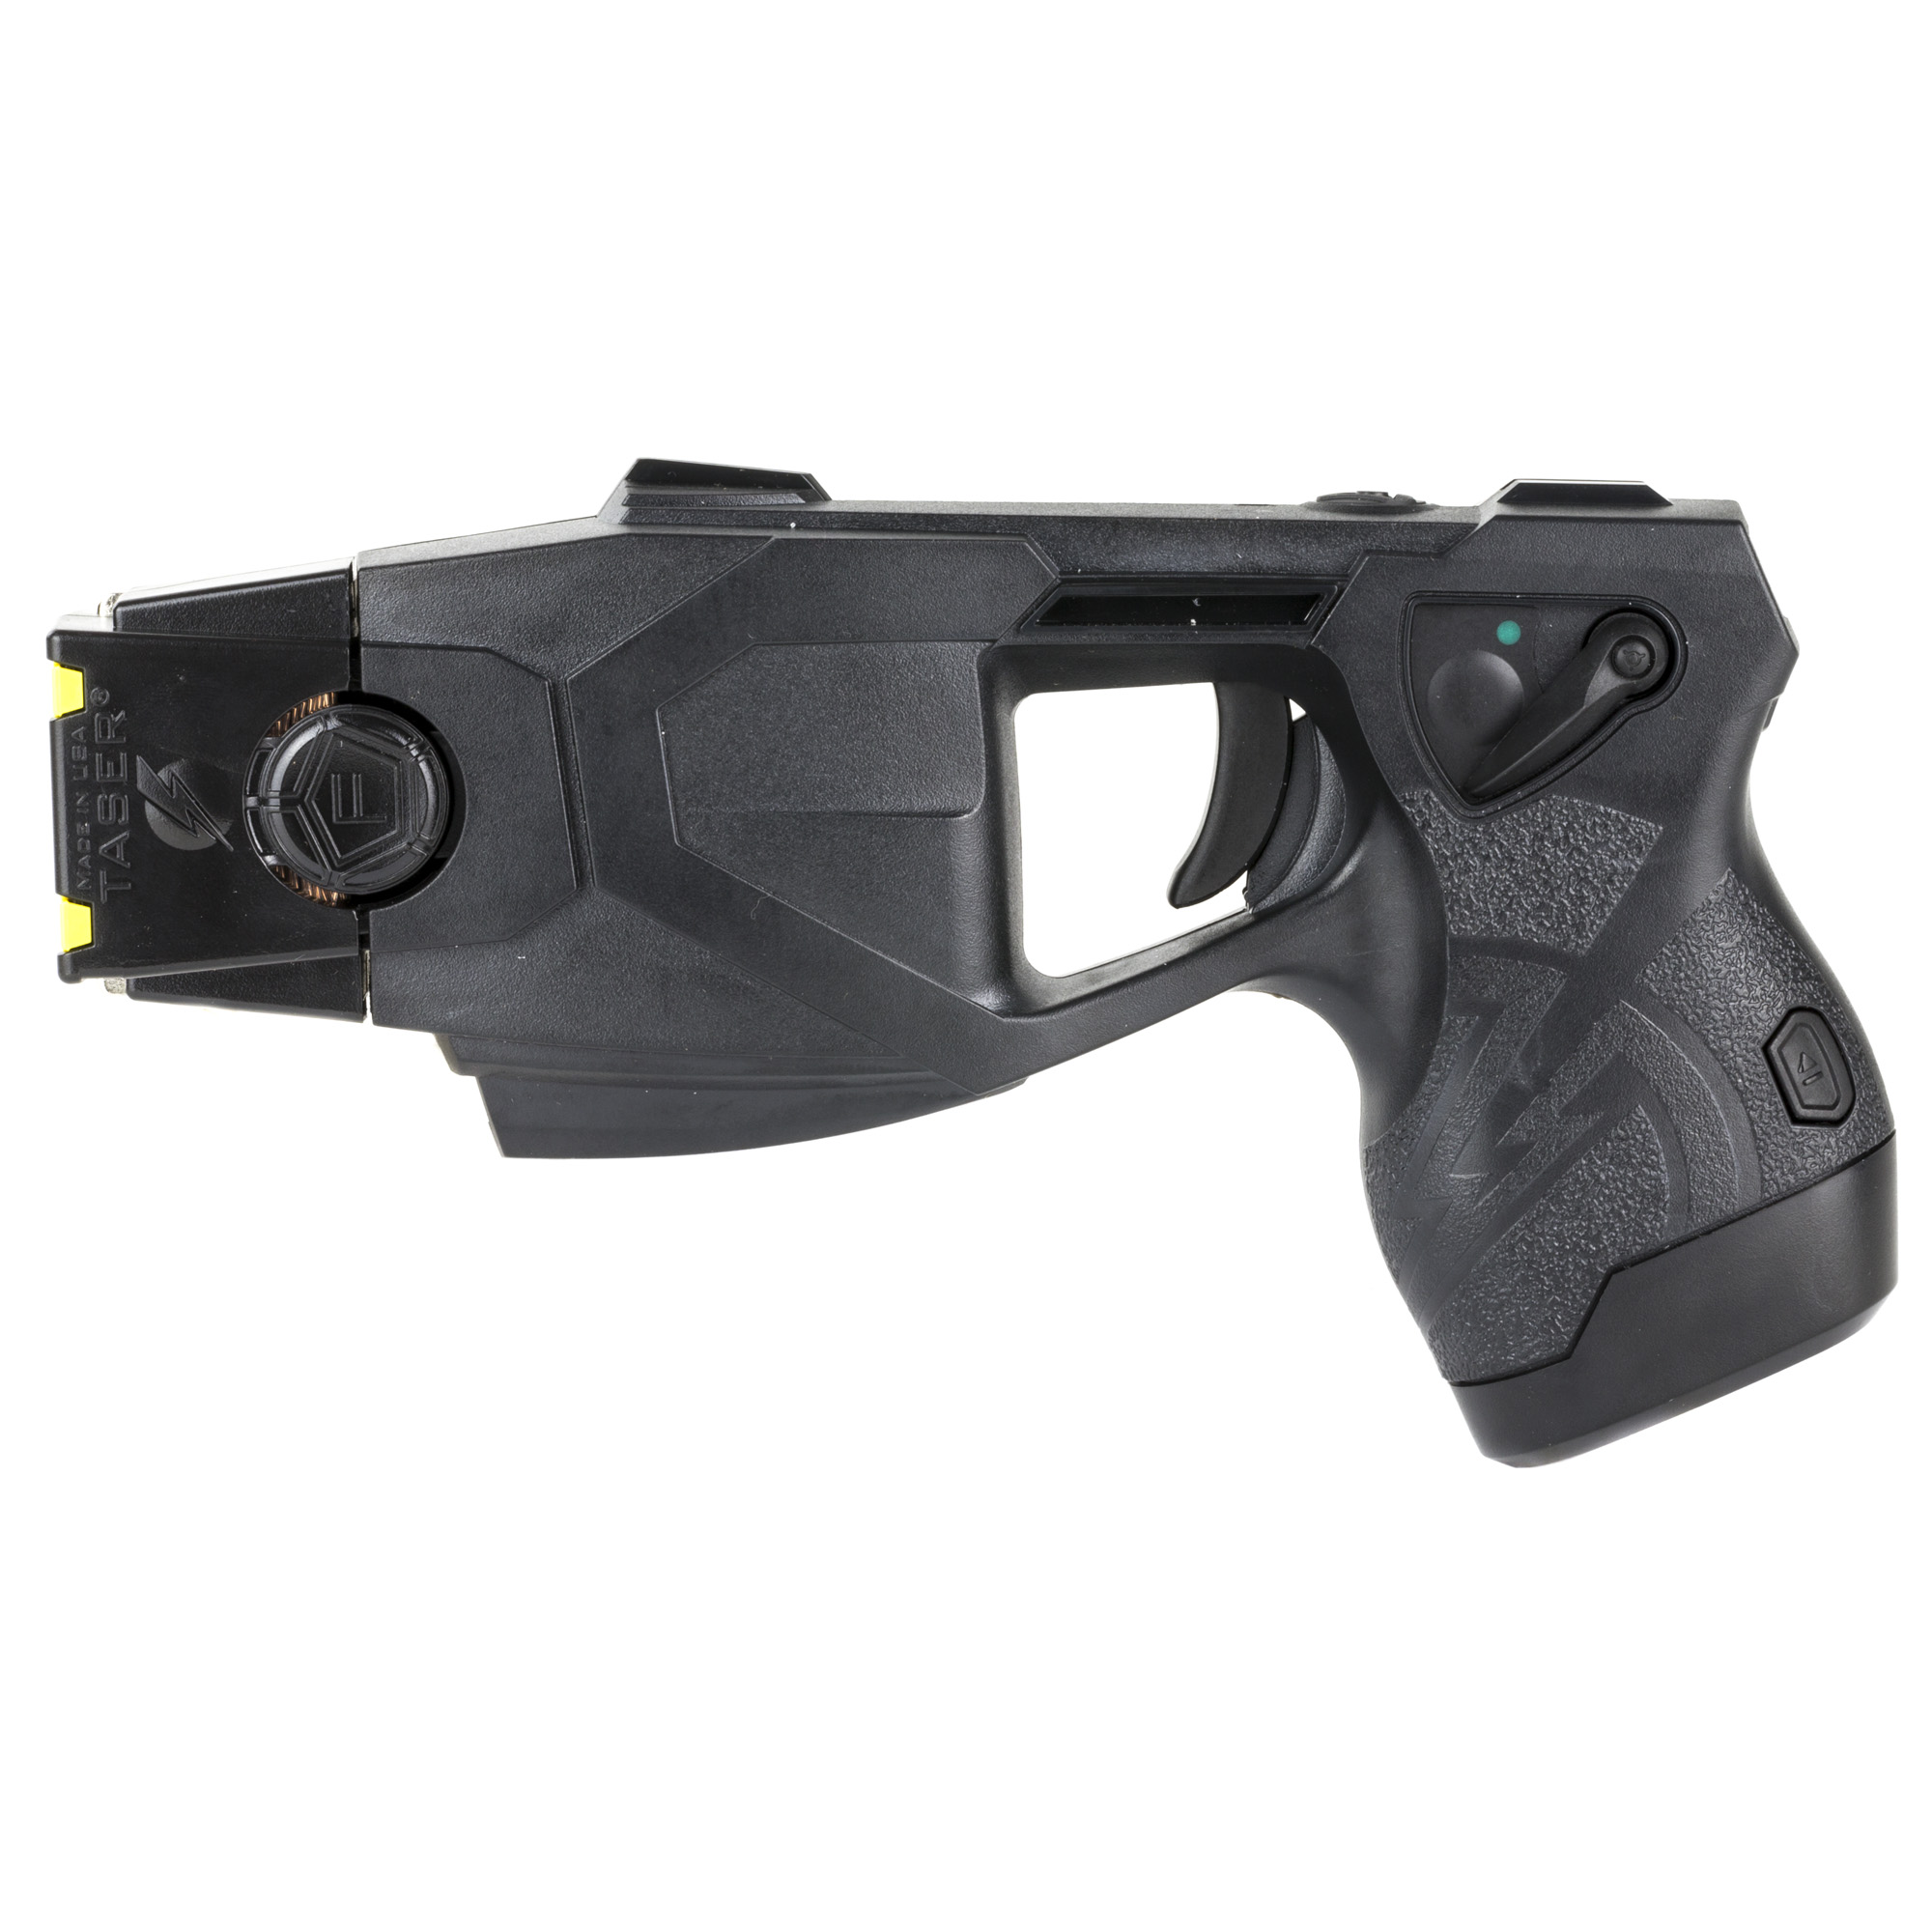 """The X26P is a strong addition to any civilian self-protection plan. It is the same innovative tool used and trusted by law enforcement agencies around the world. This means it can be effective against even the most aggressive assailants"""" or persons under the influence of drugs and/or alcohol. Equipped with a durable holster and rugged carrying case"""" the X26P is suited for both home-defense and professionals such as security personnel or delivery drivers."""